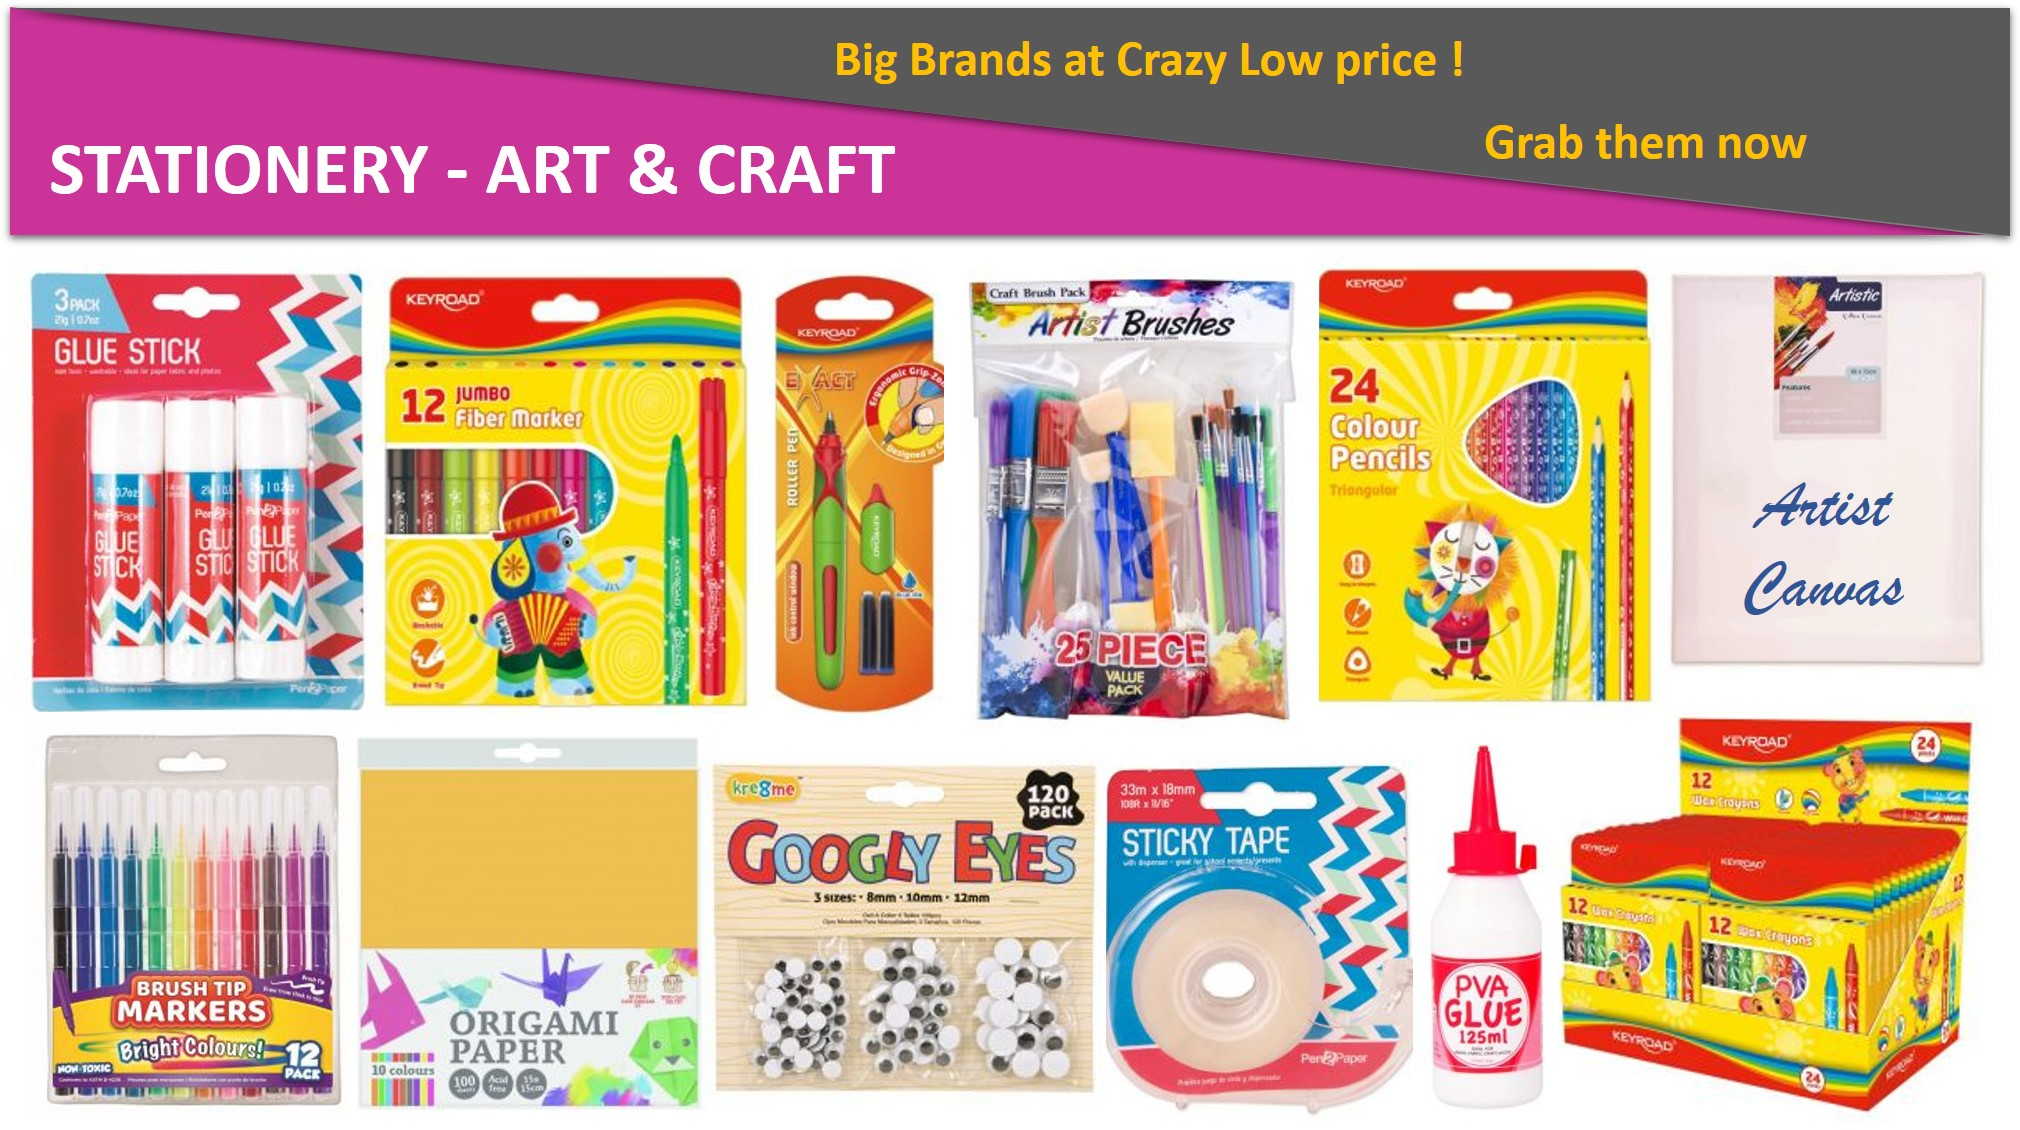 Stationery - Art & Craft